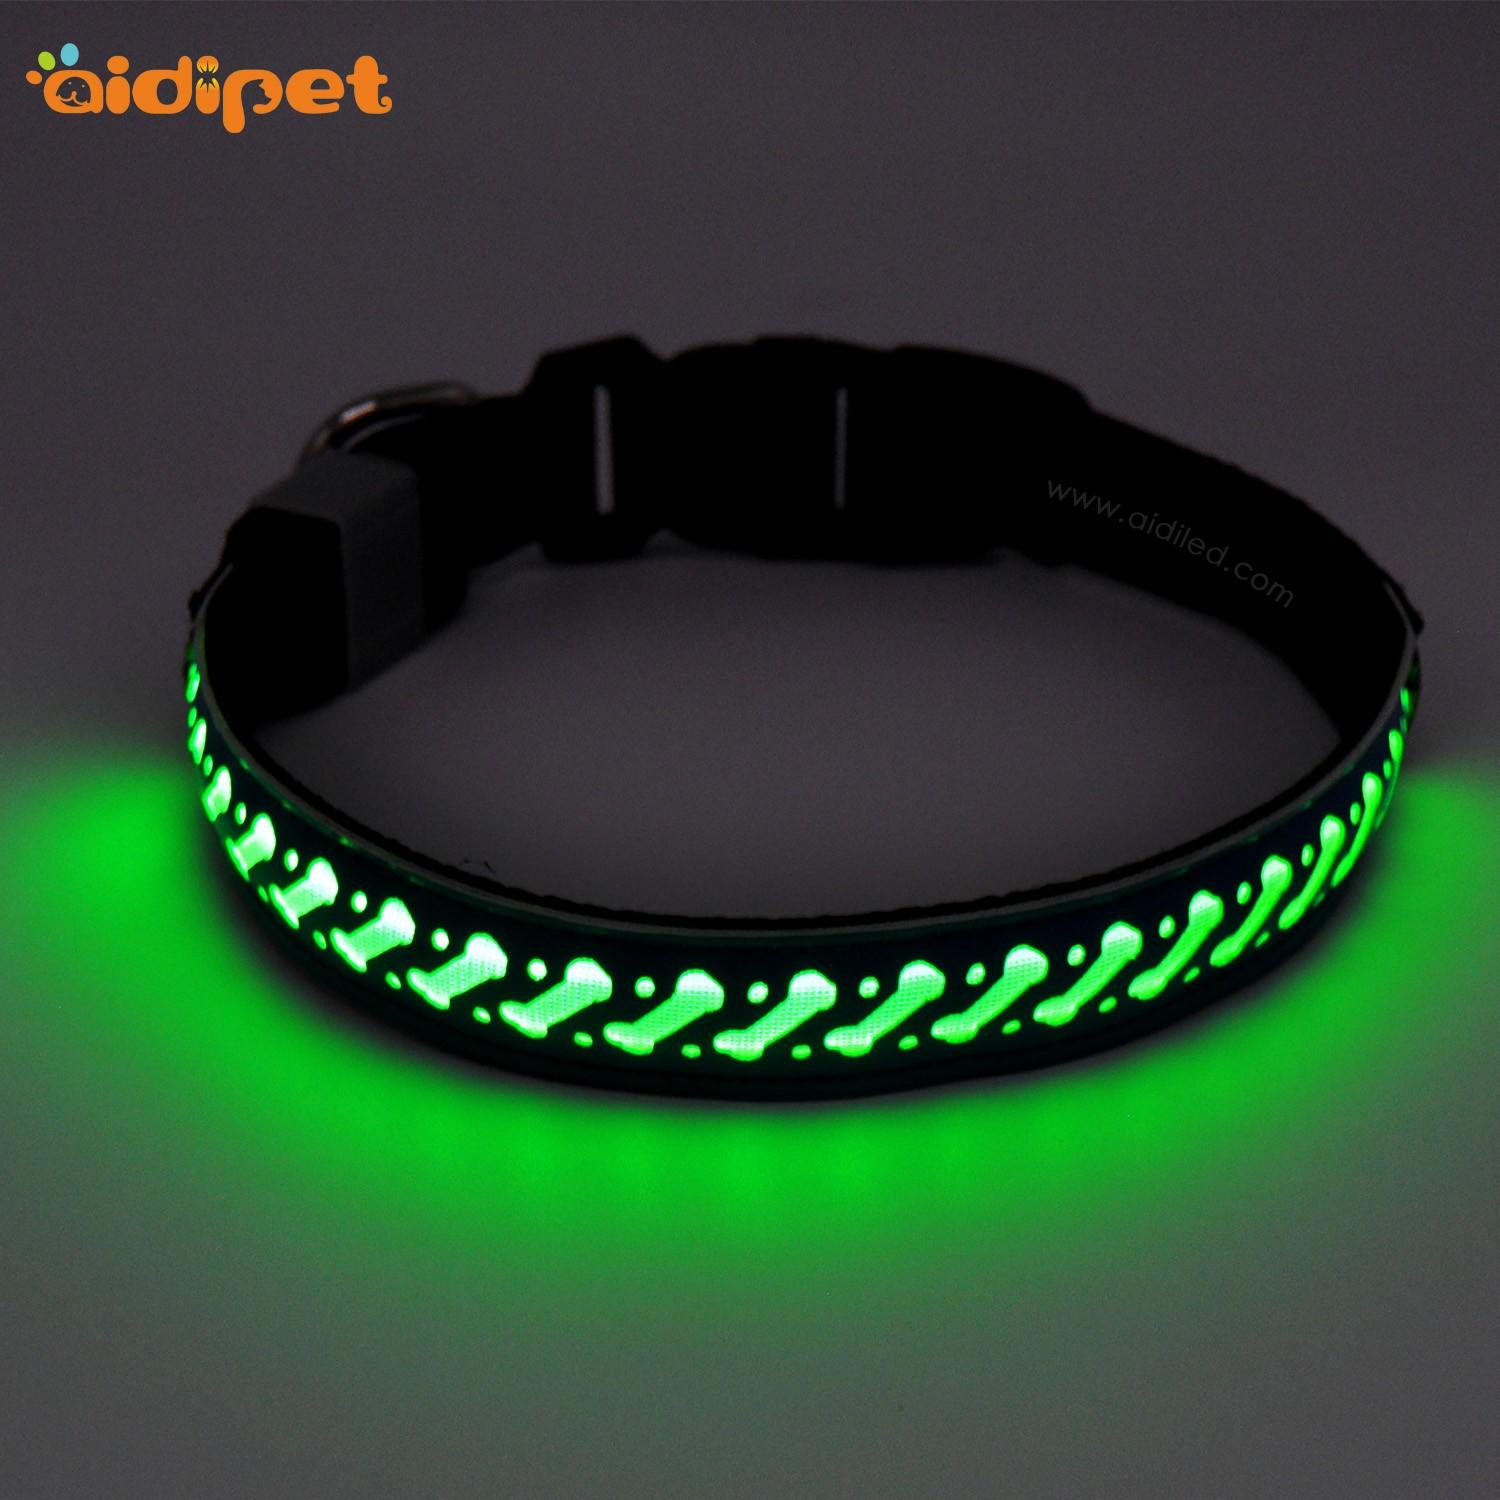 rechargeable led flashing dog collar design for park